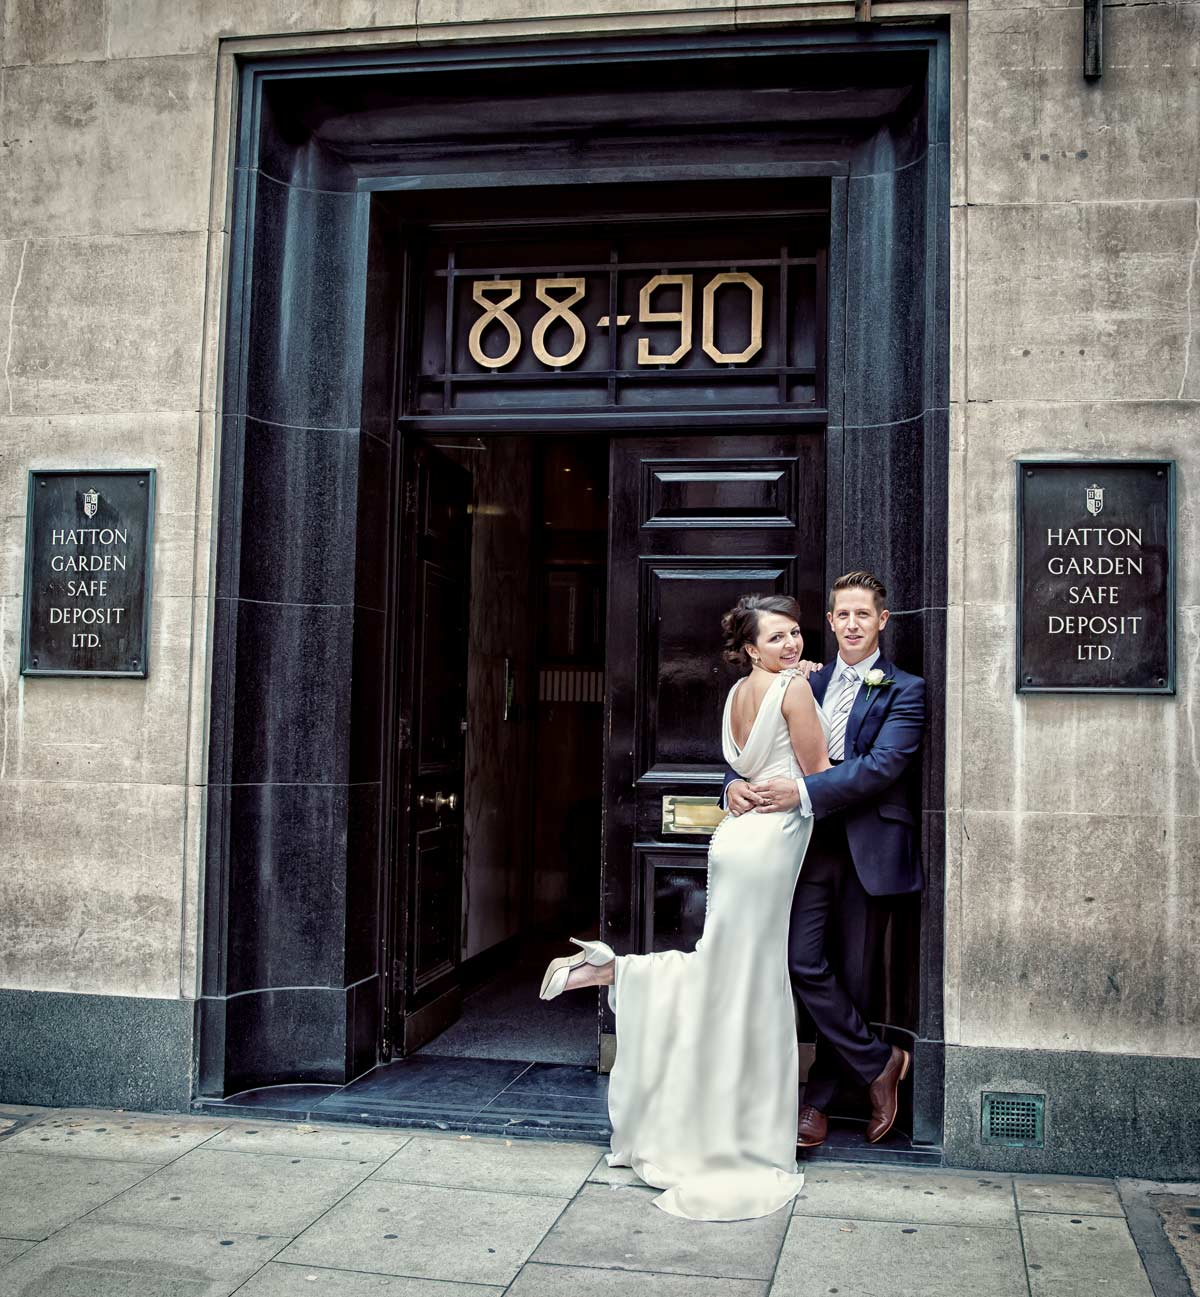 The Hatton Garden Wedding Job. Your valuables are safe... London Wedding Photographers